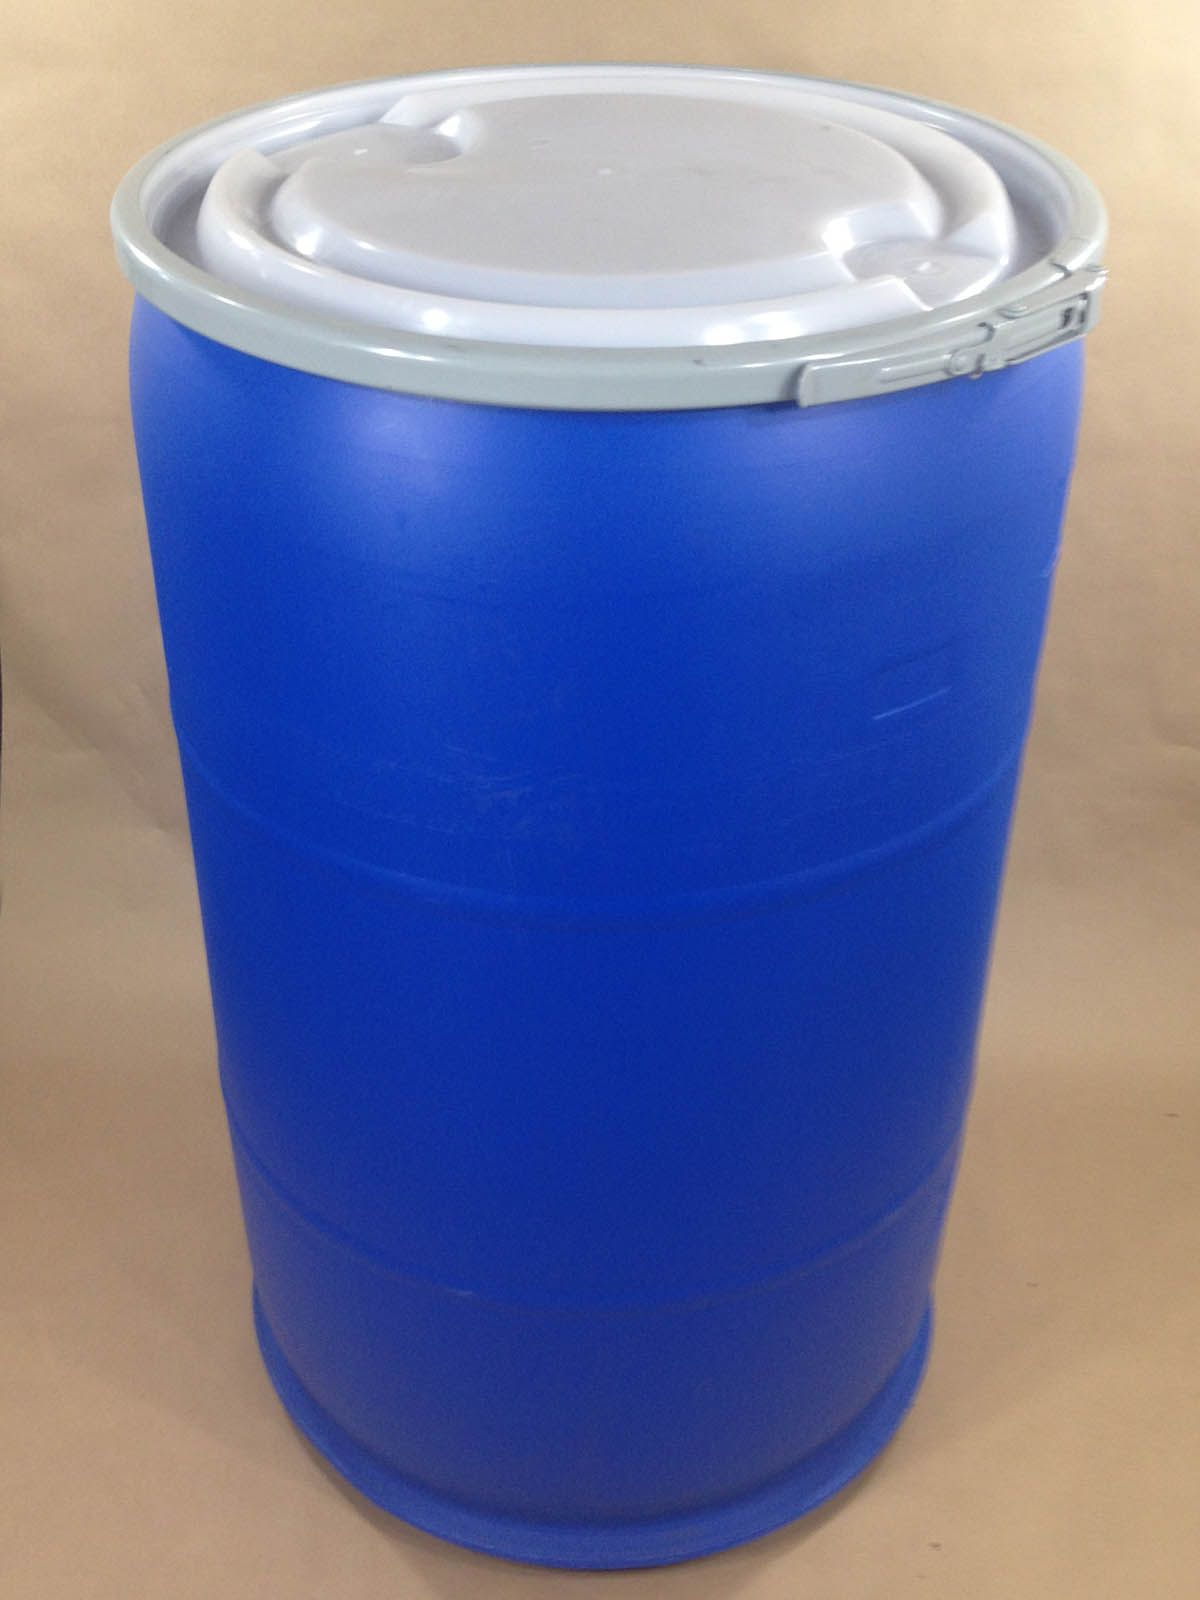 Blue Plastic Barrels And Drums 5 Gallon To 55 Gallon